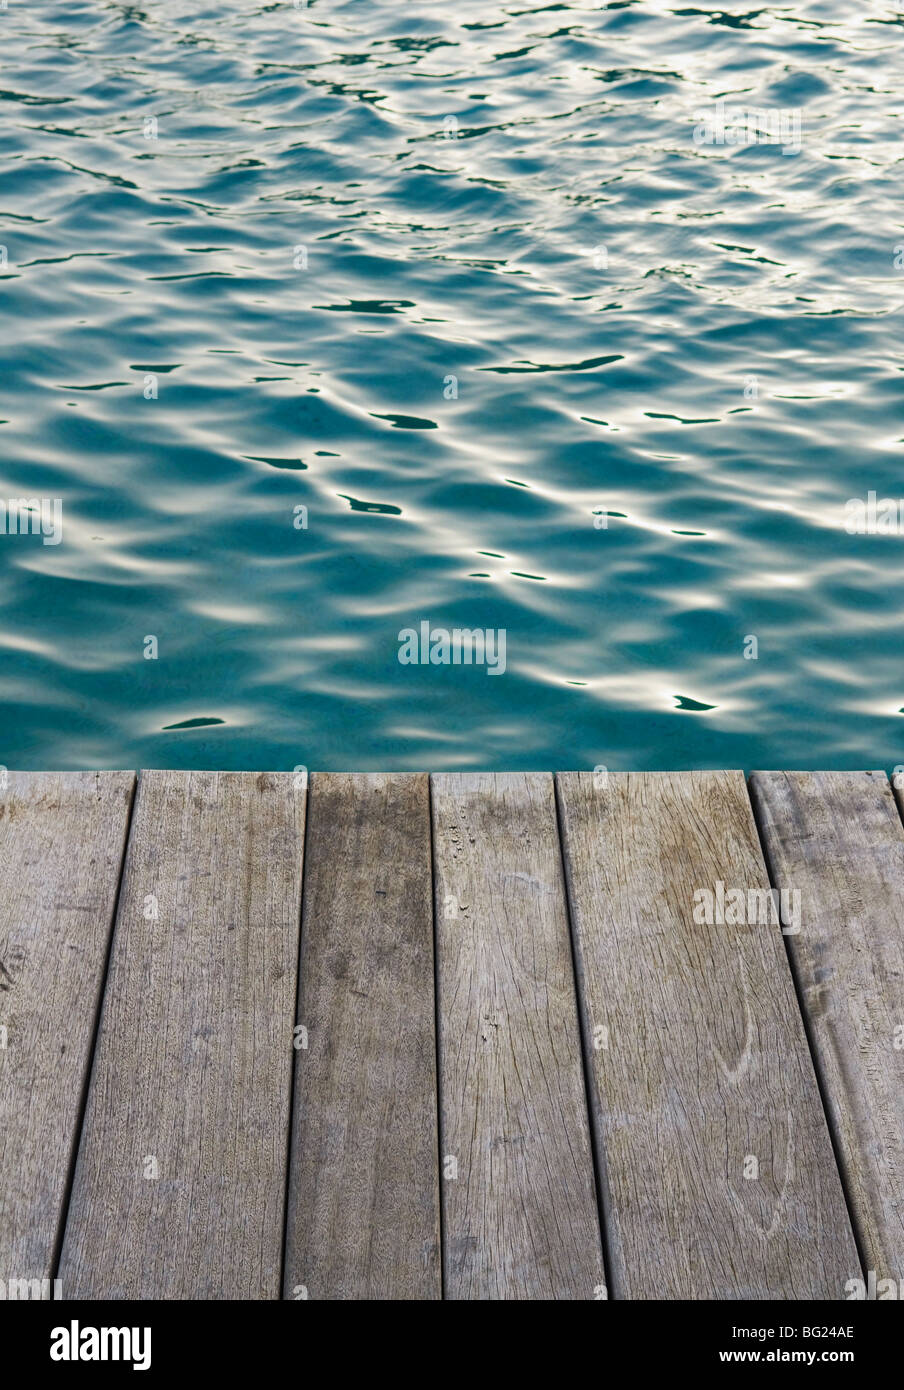 Dock on the water - Stock Image